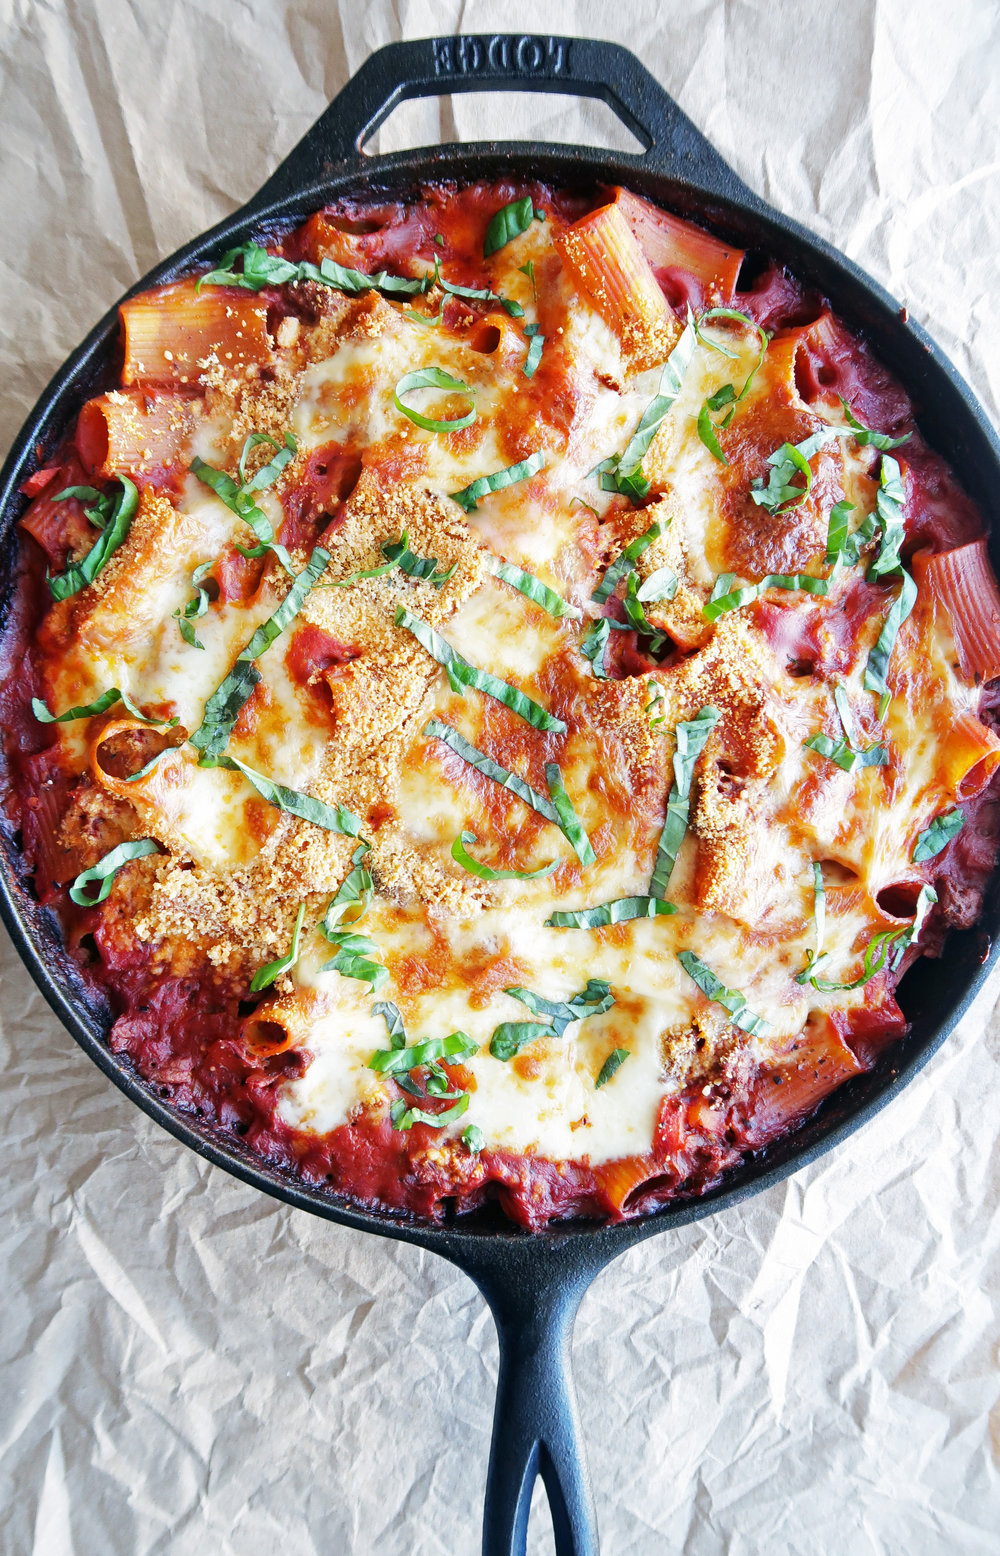 Baked Beef Pasta Casserole with melted cheesy topping and fresh basil in a cast-iron skillet.